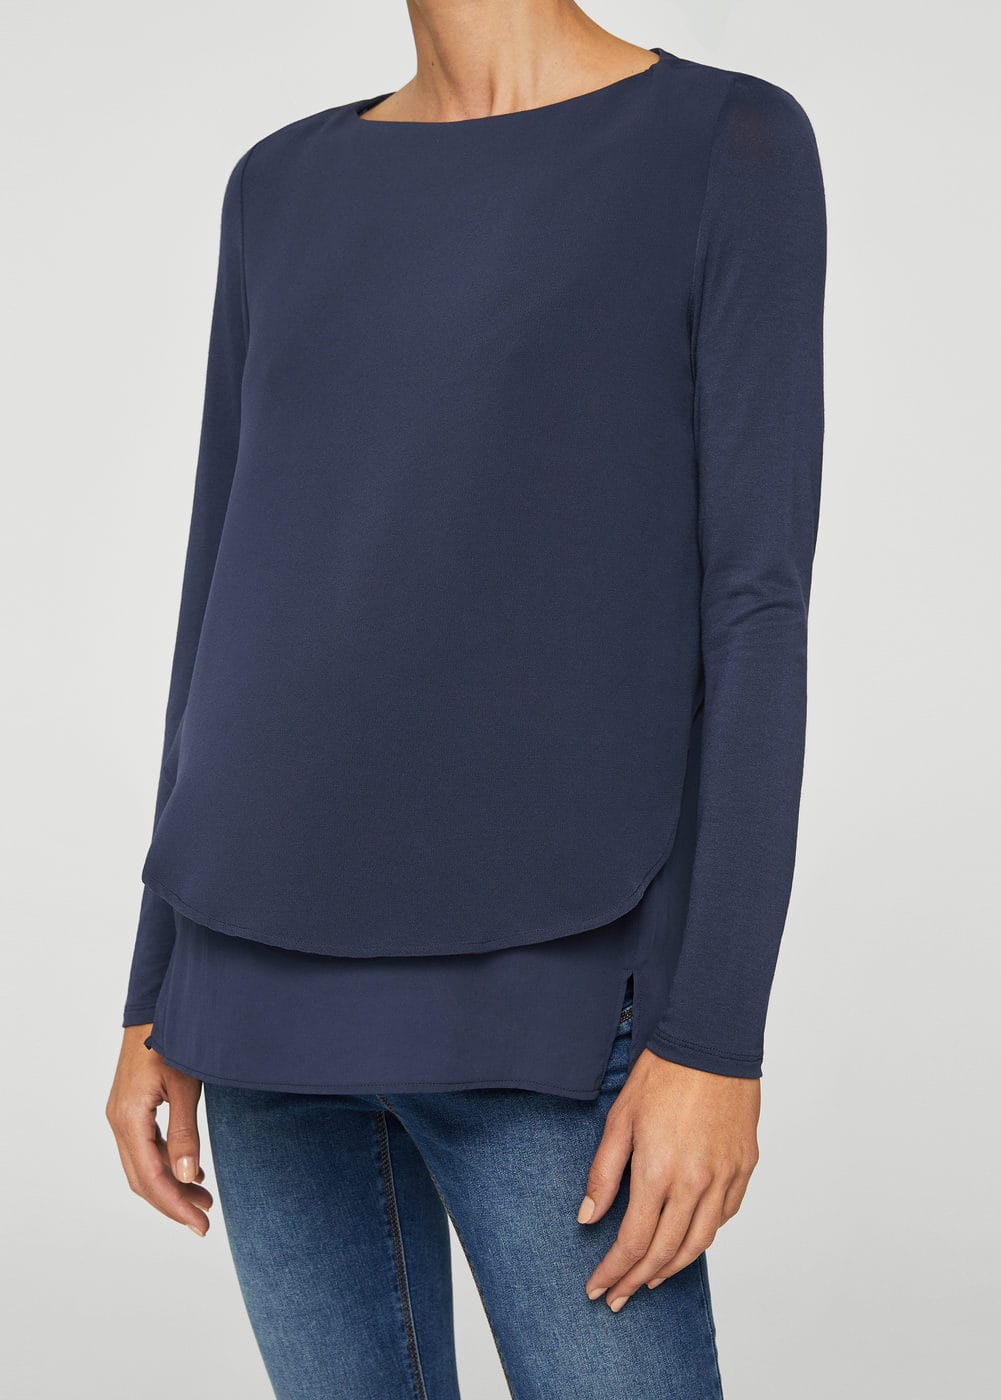 Double-layer blouse | MANGO